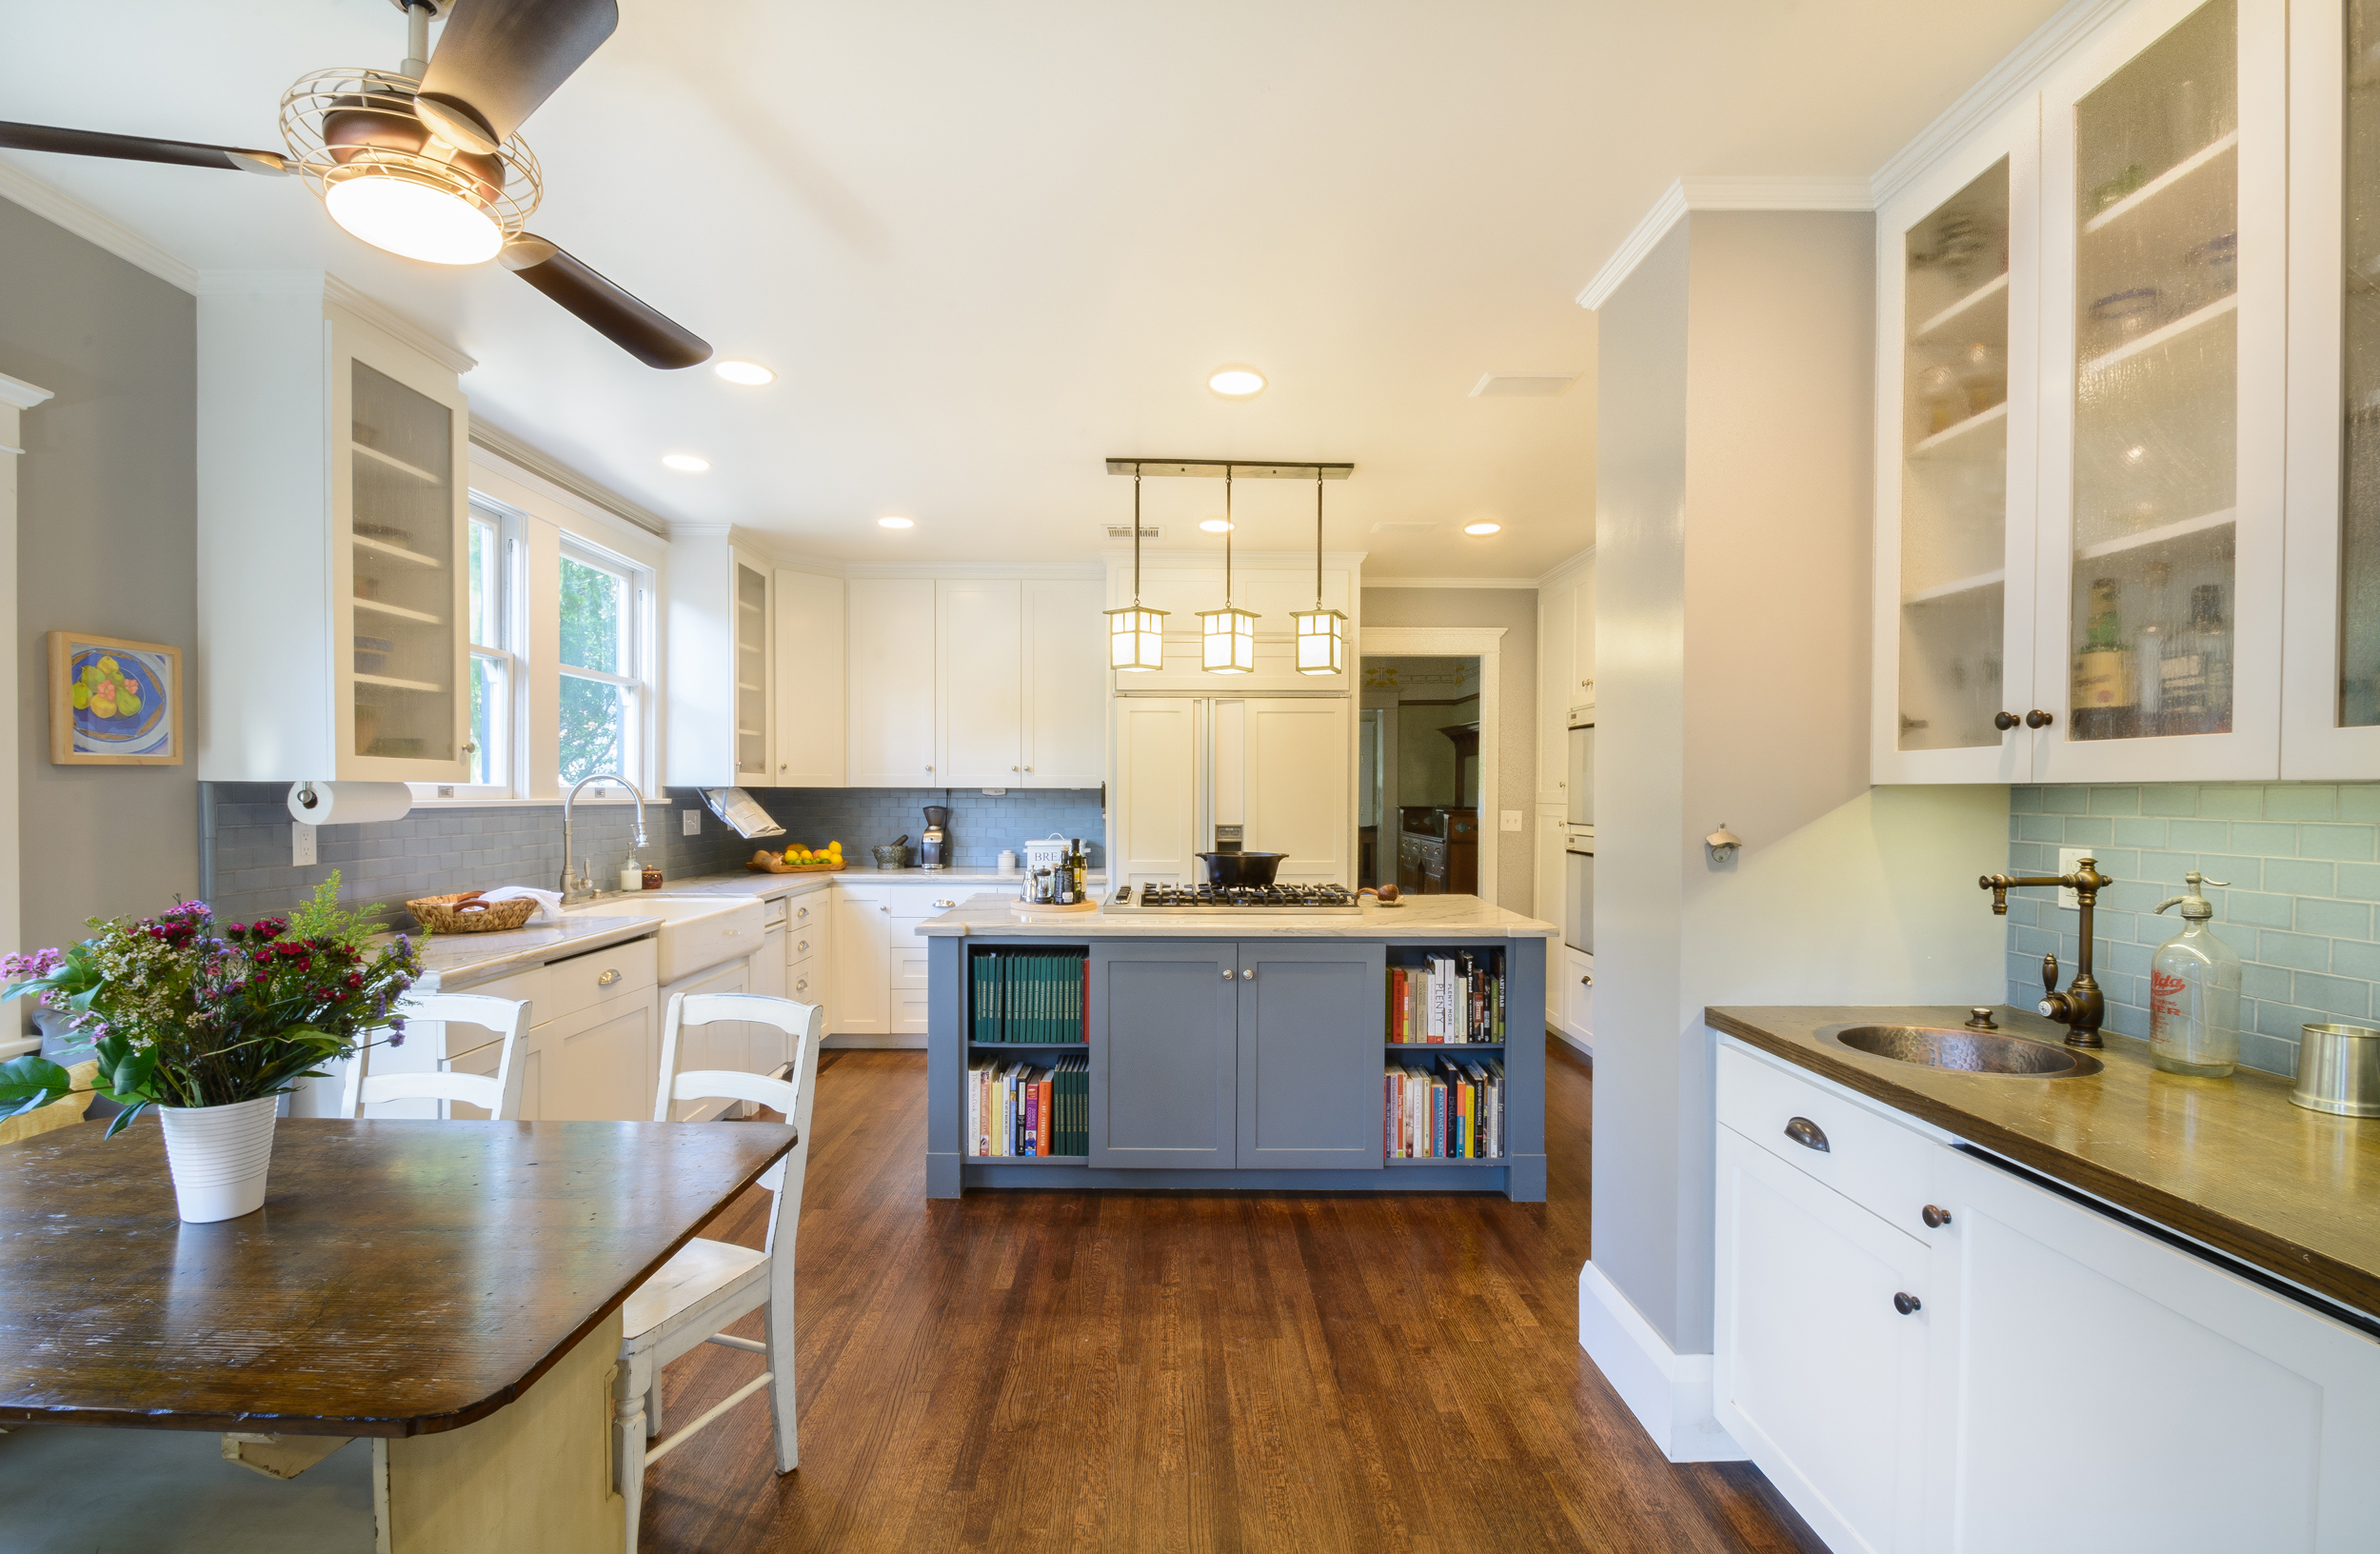 Craftsman kitchen jewel: bright, warm and soothing